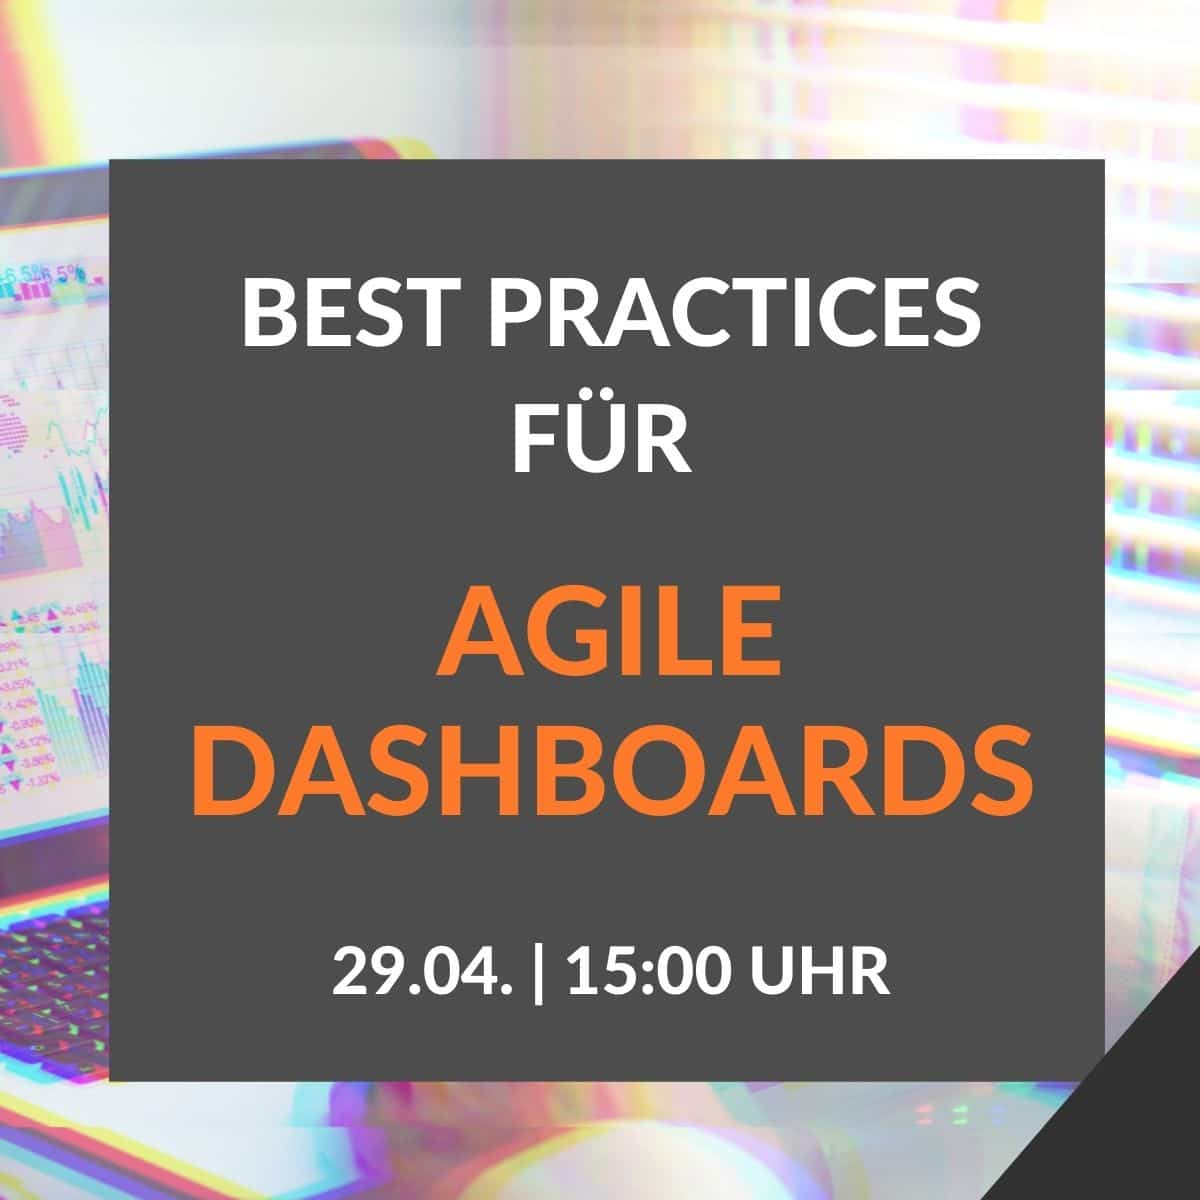 Agile Dashboards